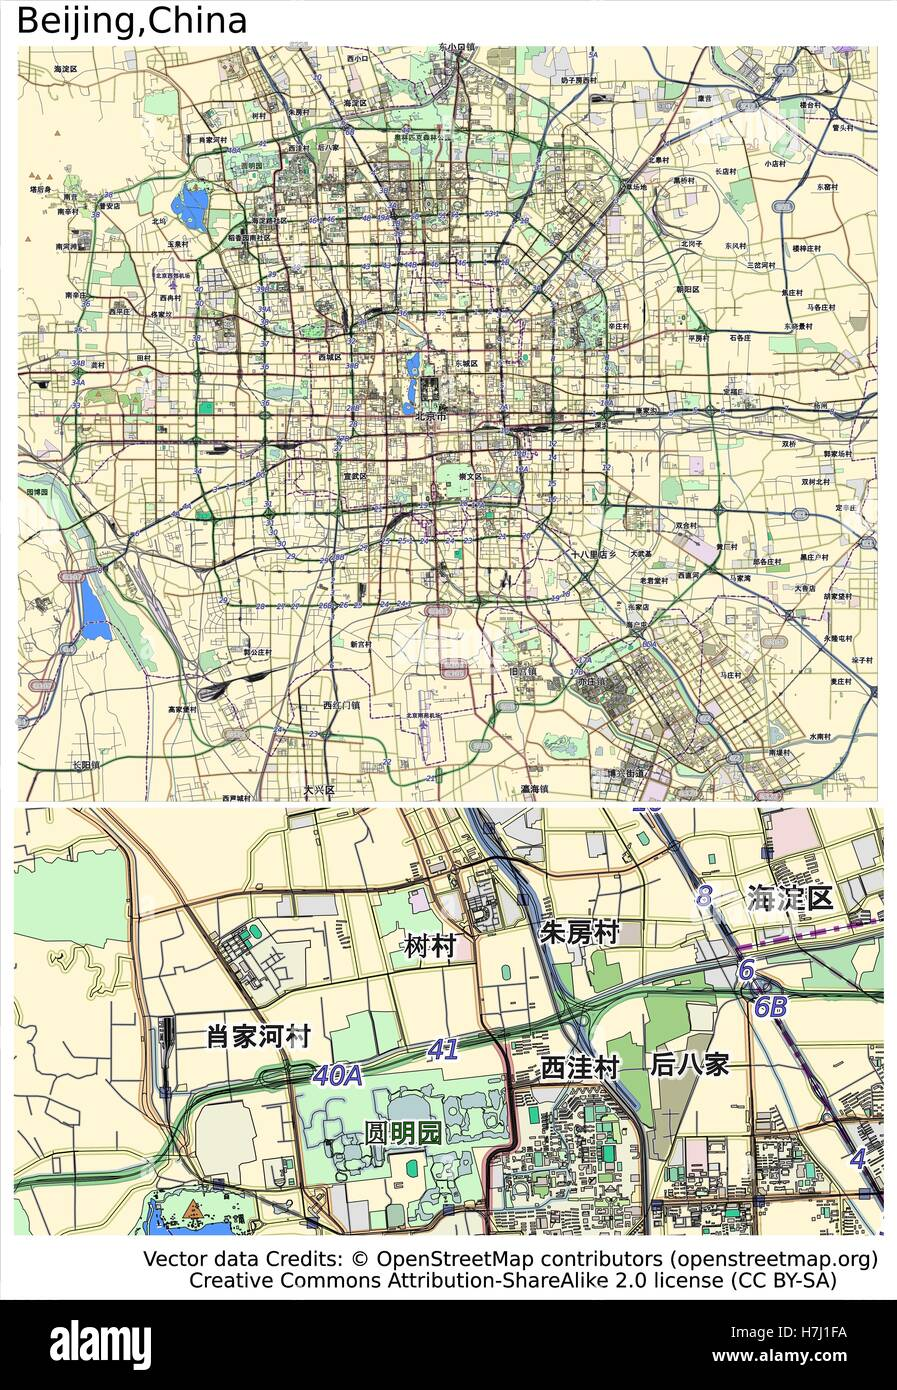 Beijing China aerial view city map - Stock Image